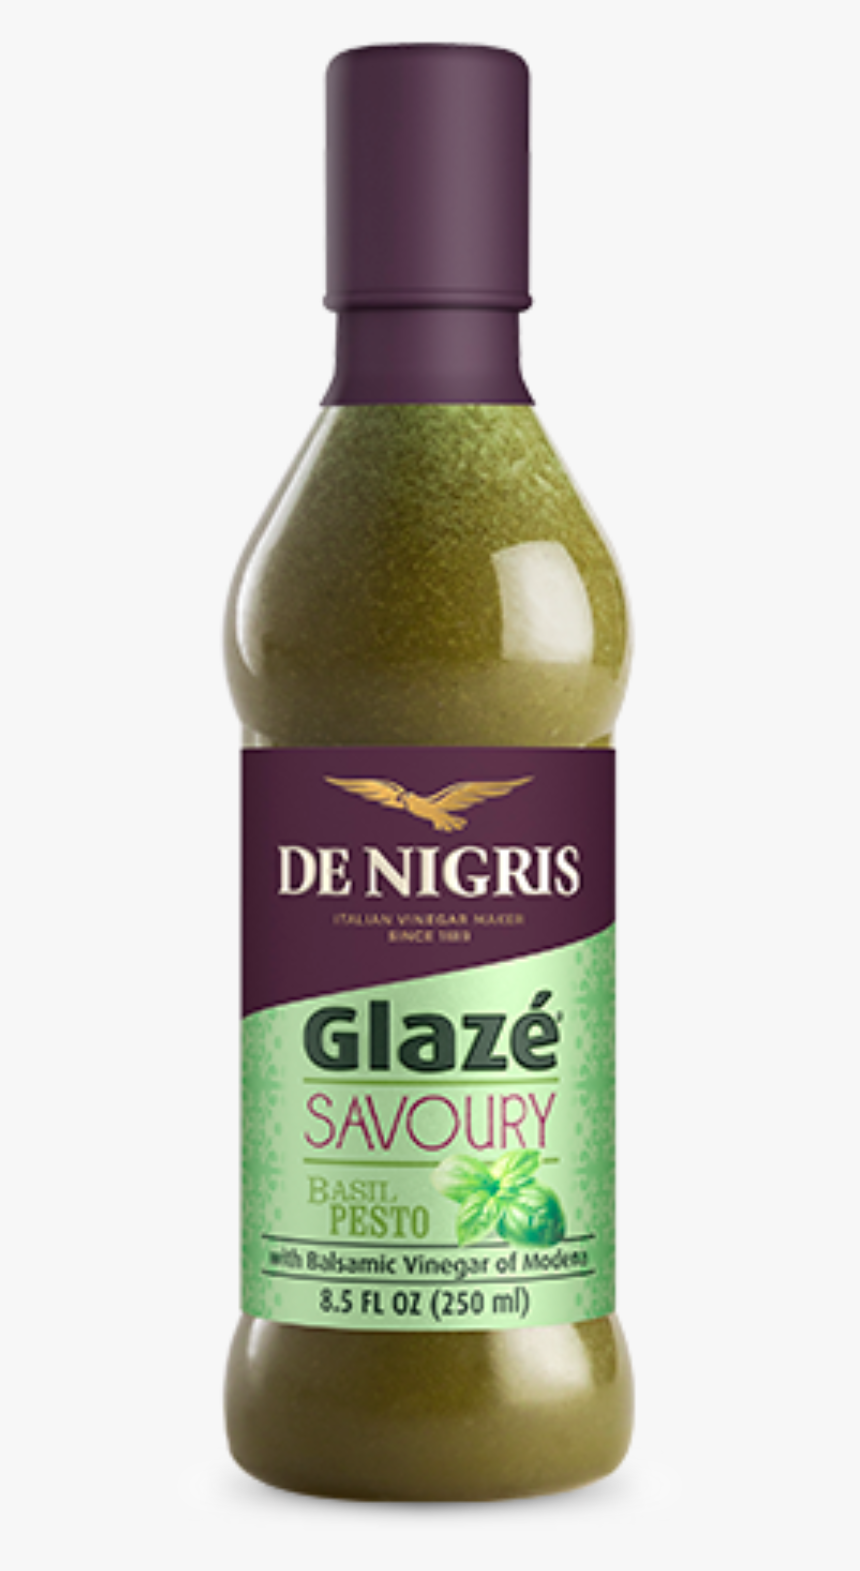 Sriracha Bottle Png Savory Glazè Basil Pesto - Glass Bottle, Transparent Png, Free Download